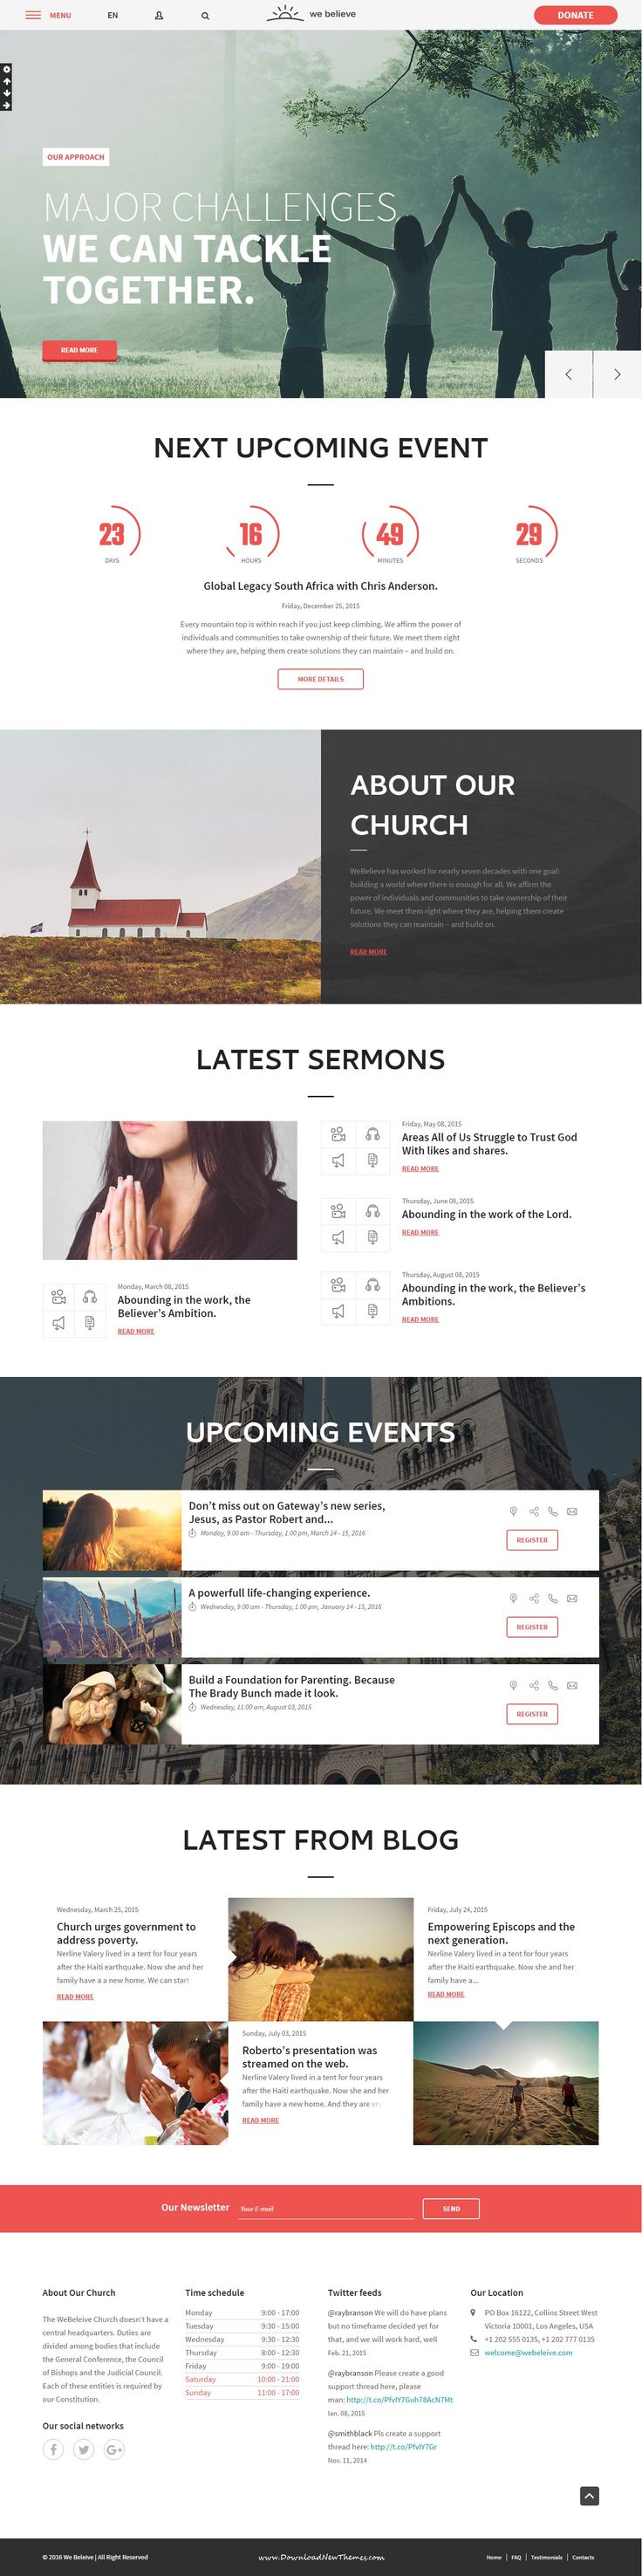 WeBelieve is a fully functional Bootstrap HTML5 Template designed & developed for for #churches, prayer groups, #christian, #charity and non-profit organizations website.